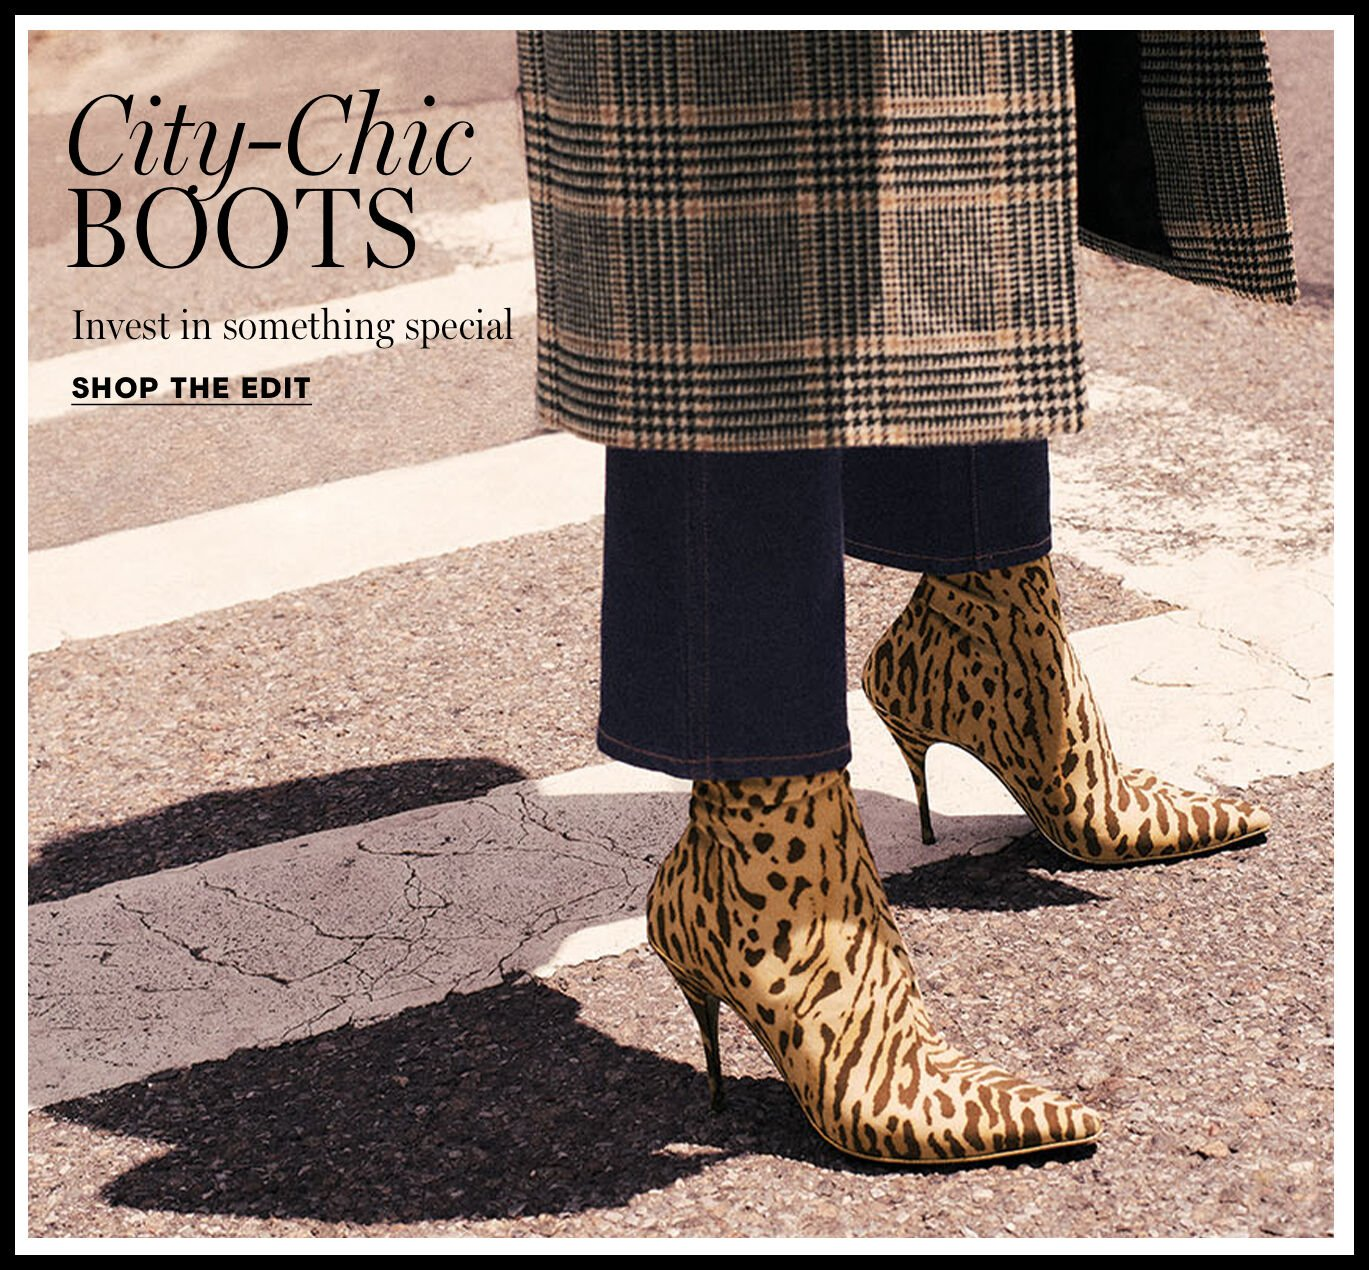 City-Chic Boots